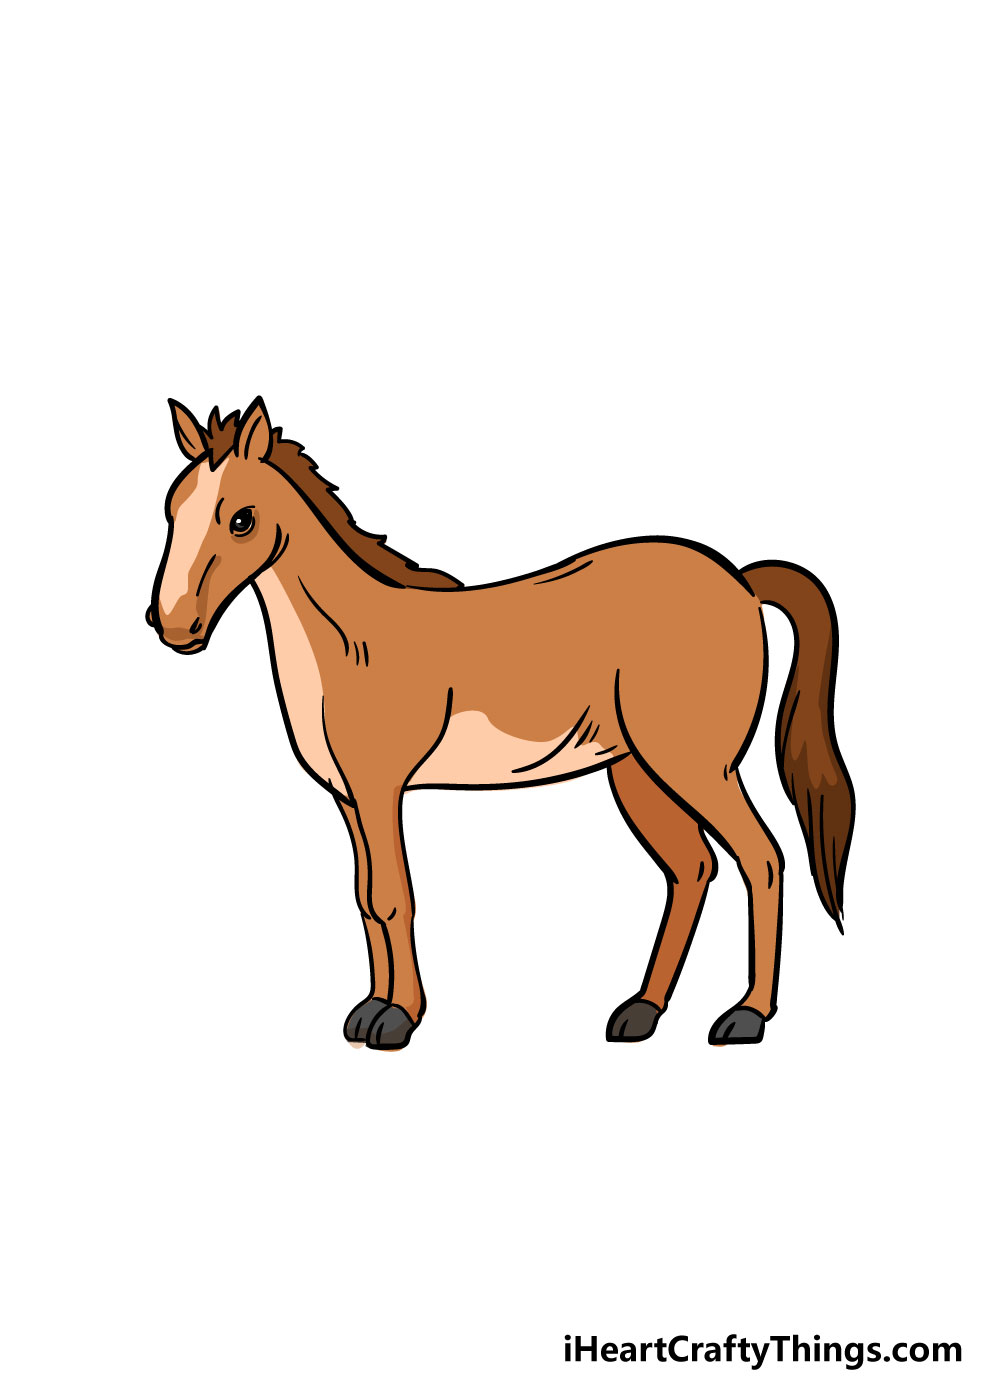 horse drawing step 9